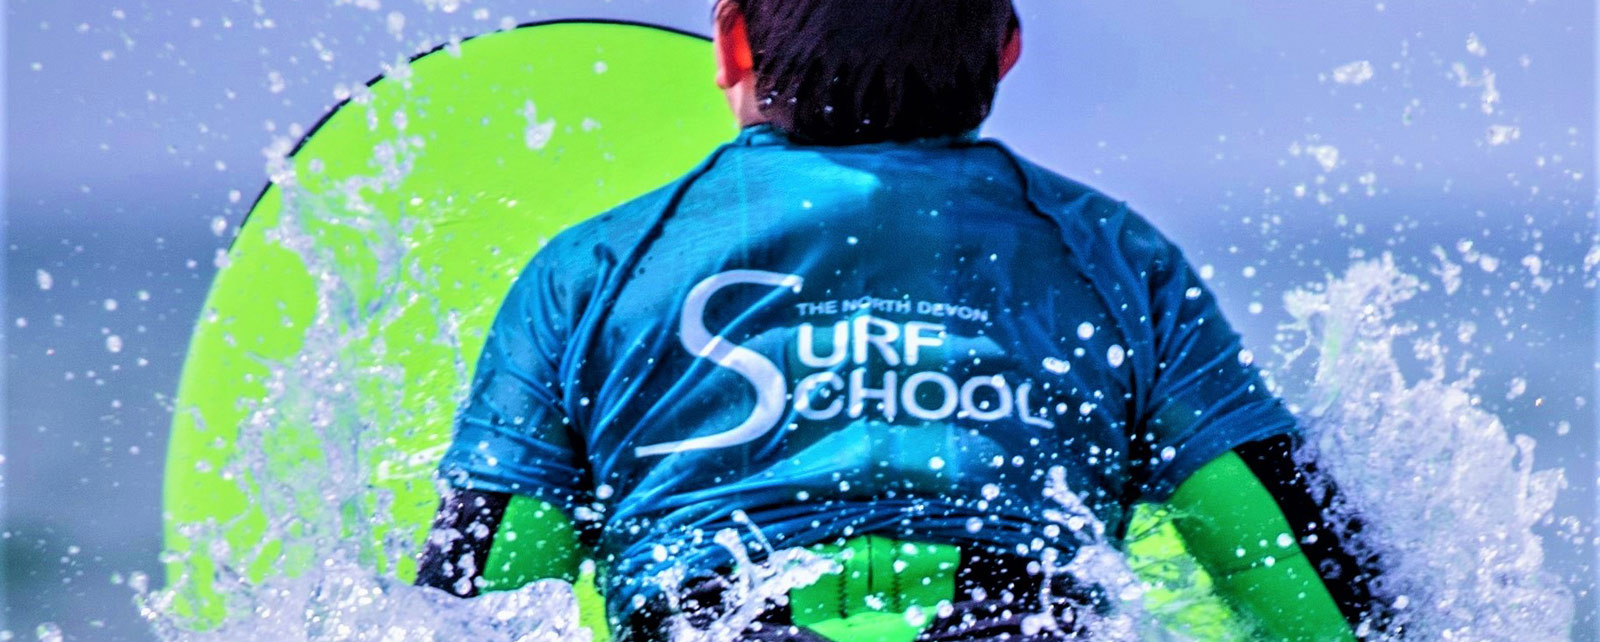 Learn the basics of surfing